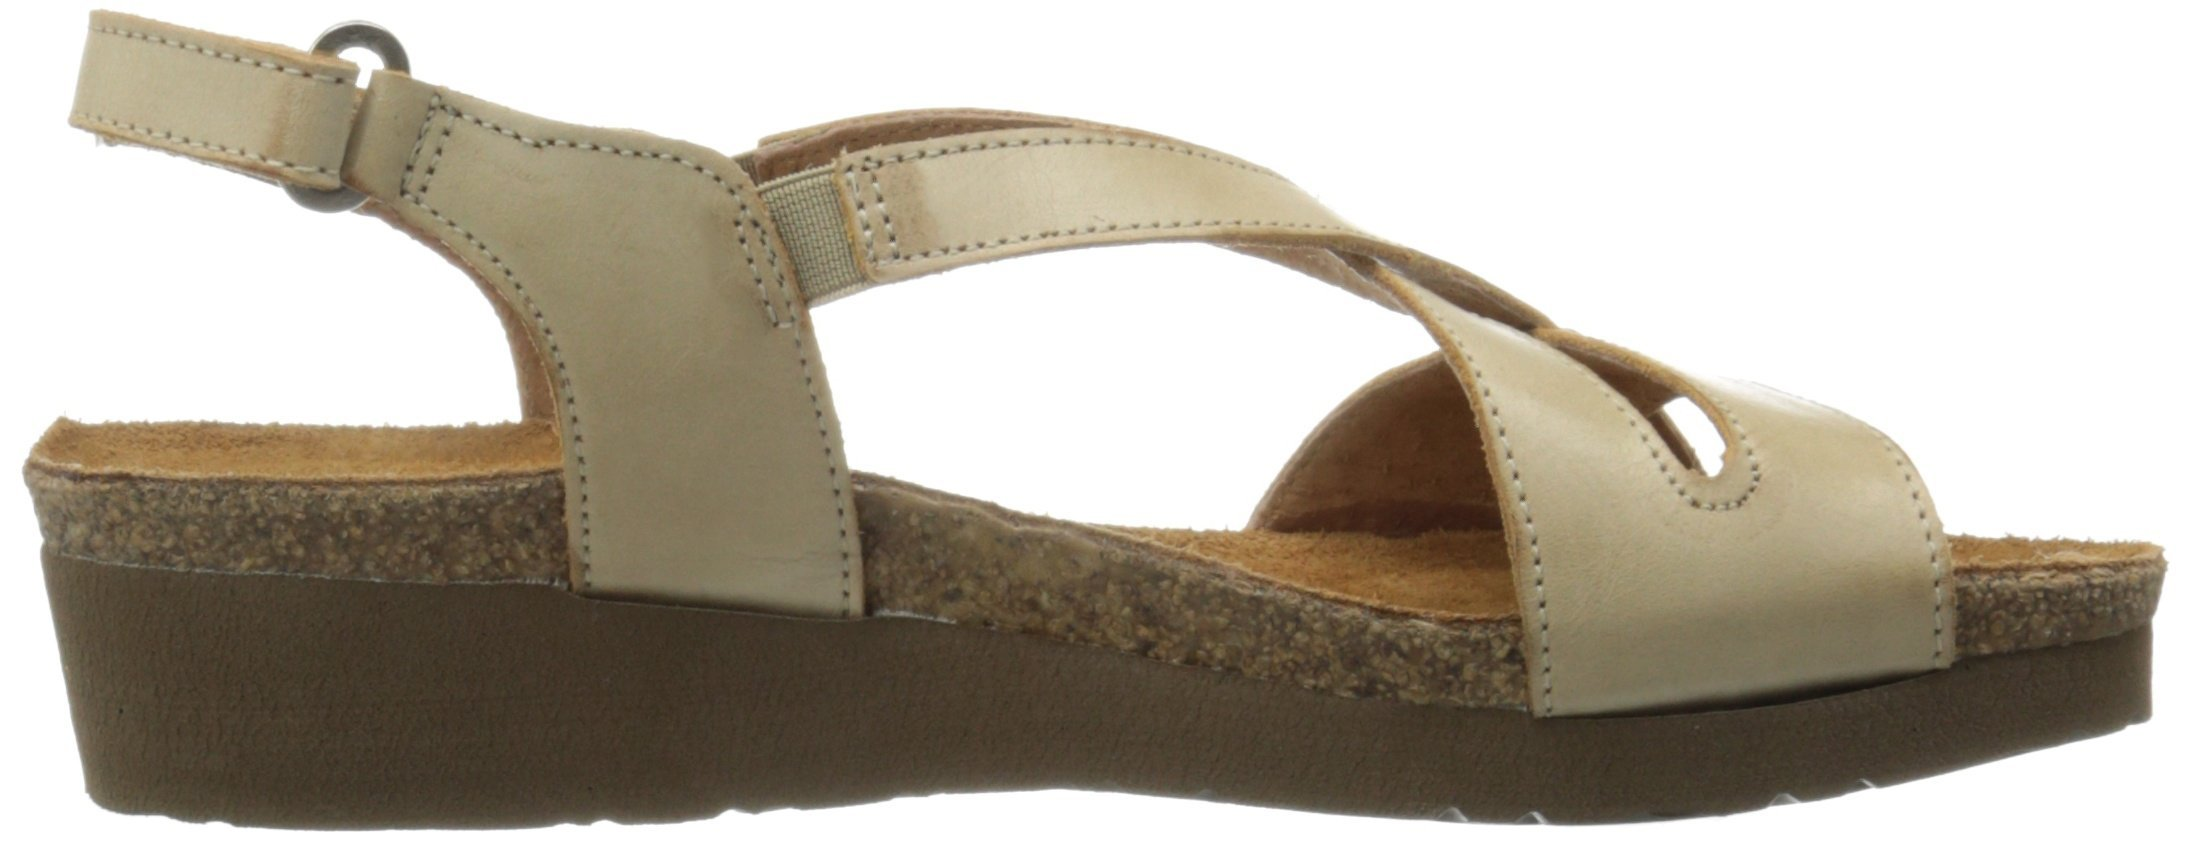 Naot Women's Bernice Wedge Sandal, Biscuit Leather, 35 EU/4.5-5 M US by NAOT (Image #7)